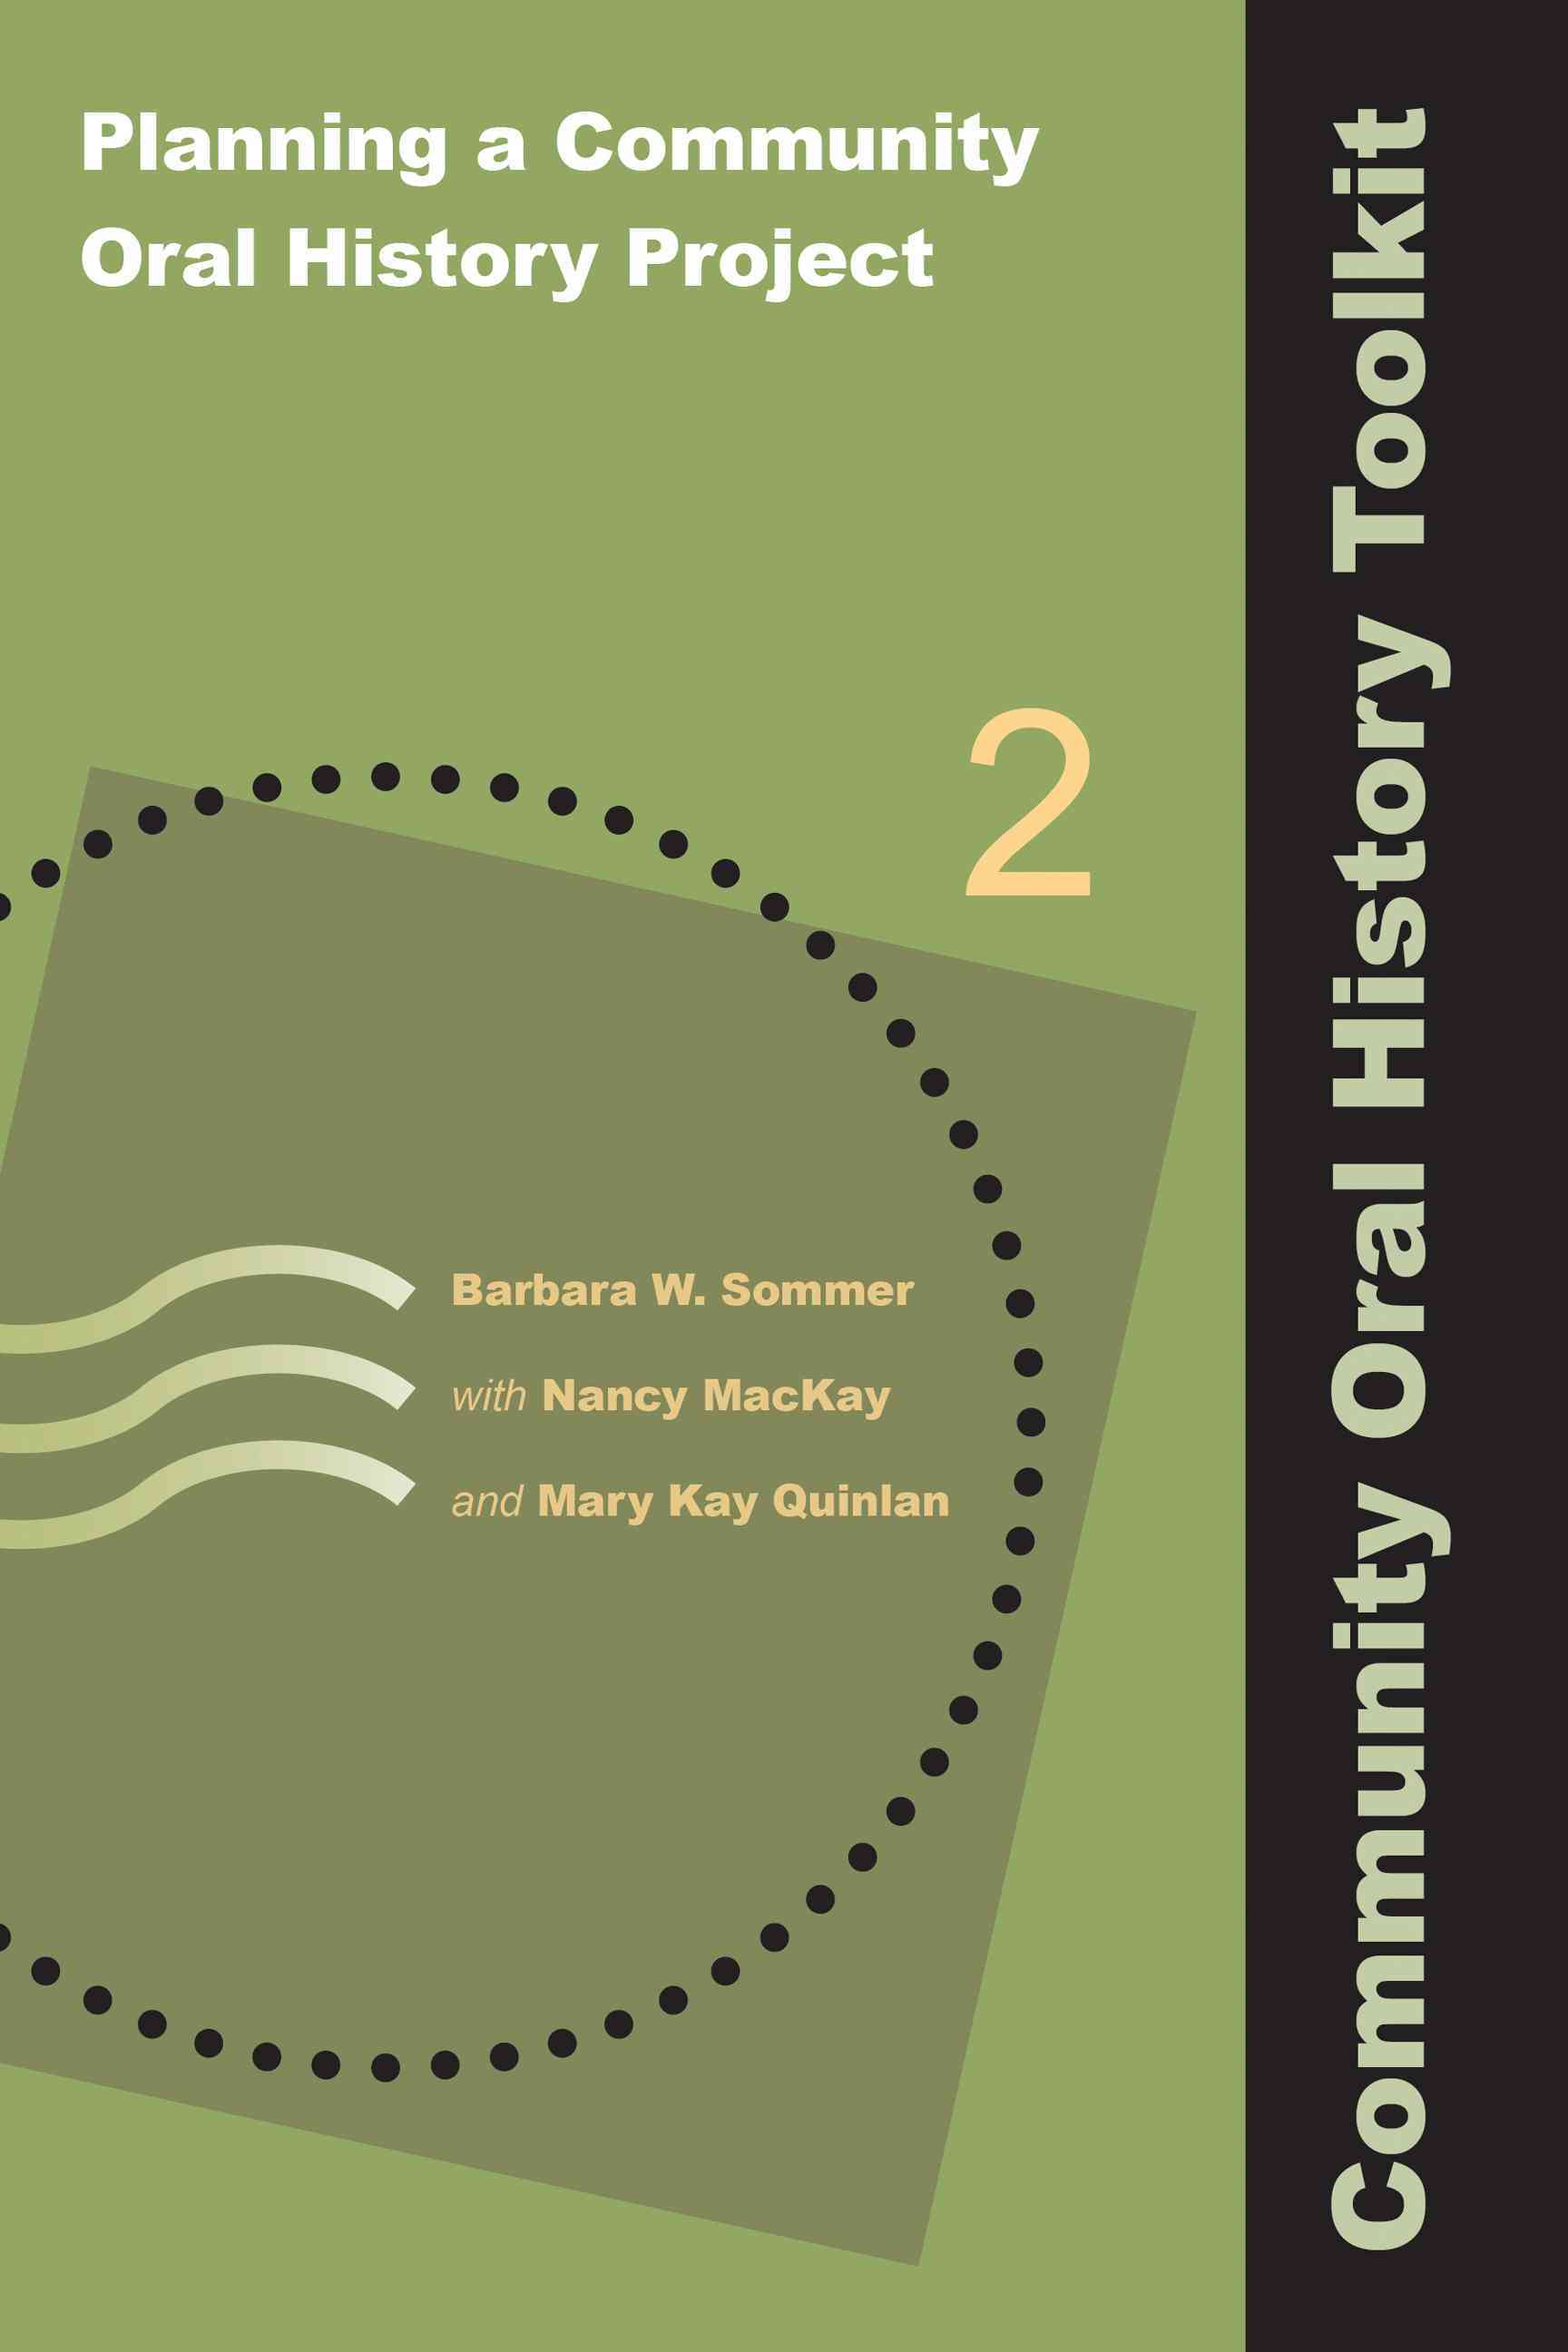 Planning a Community Oral History Project By Sommer, Barbara W./ MacKay, Nancy/ Quinlan, Mary Kay